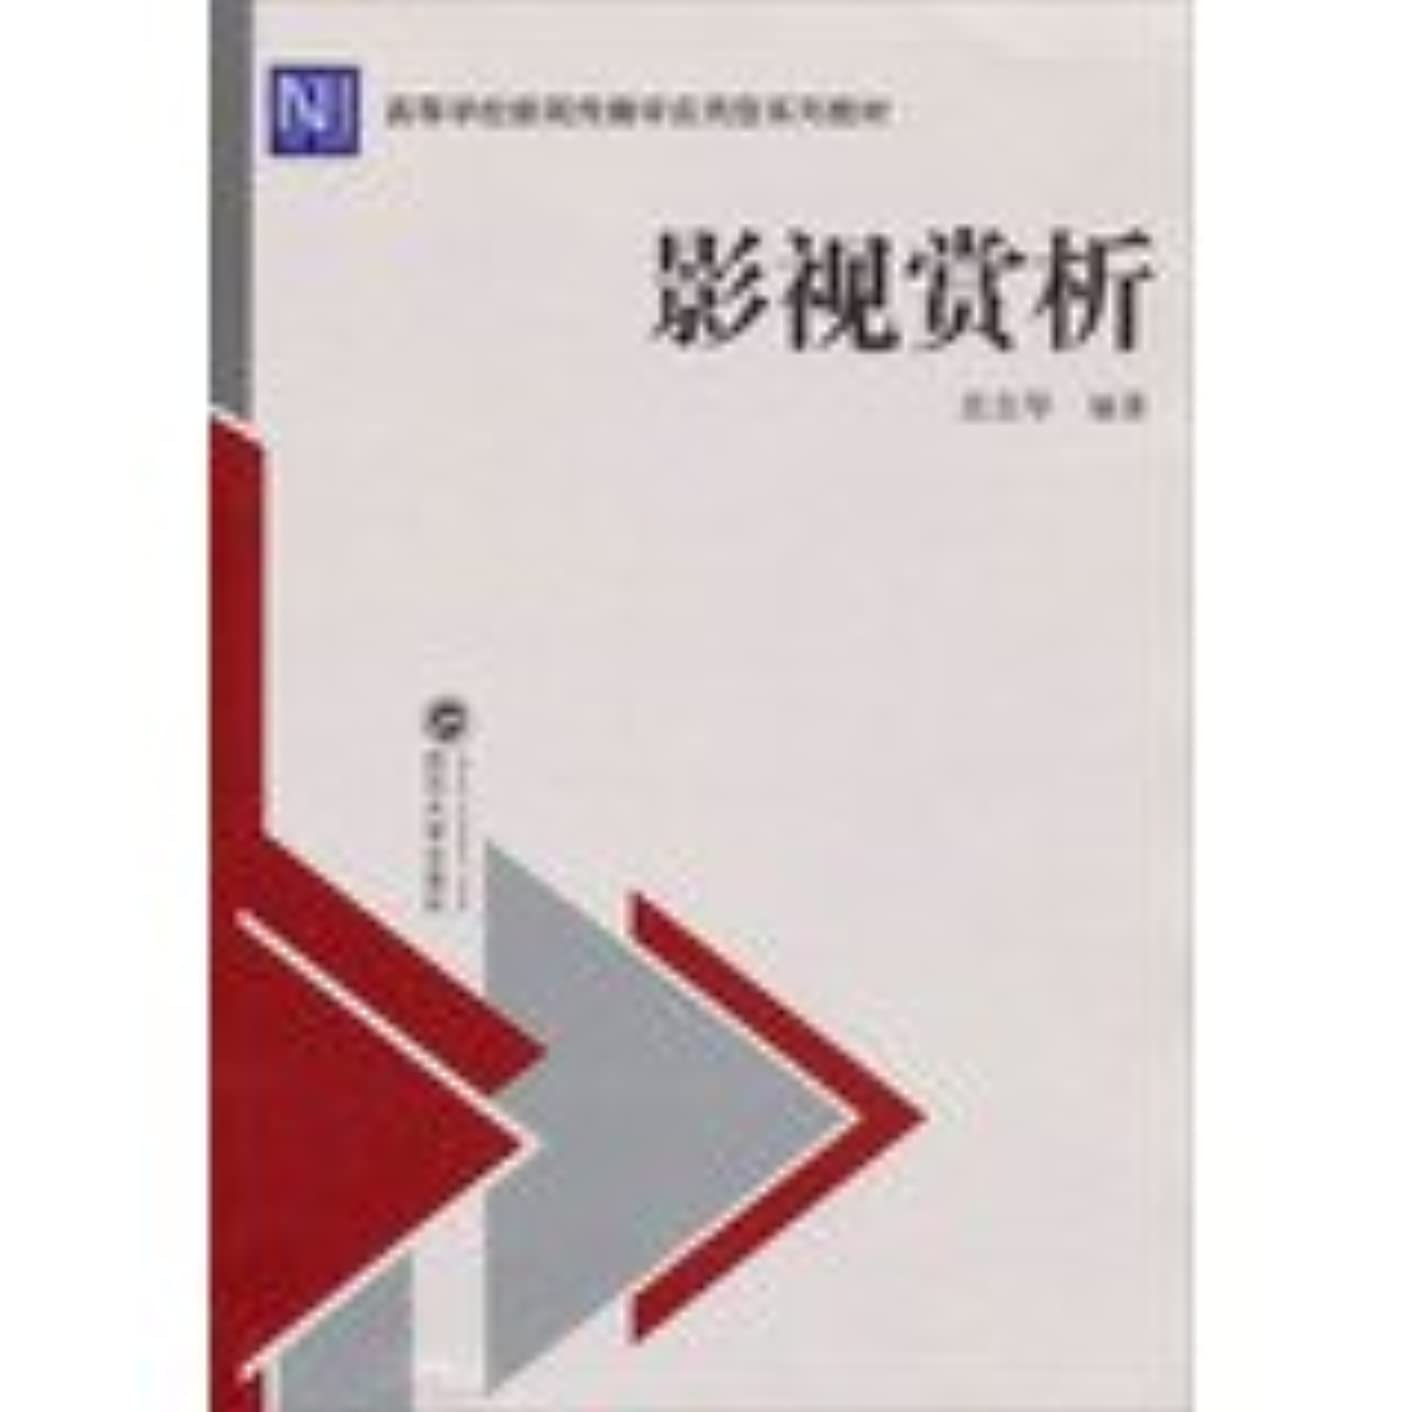 The film and television appreciation of institutions of higher learning applied a series of journalism and communication materials(Chinese Edition)